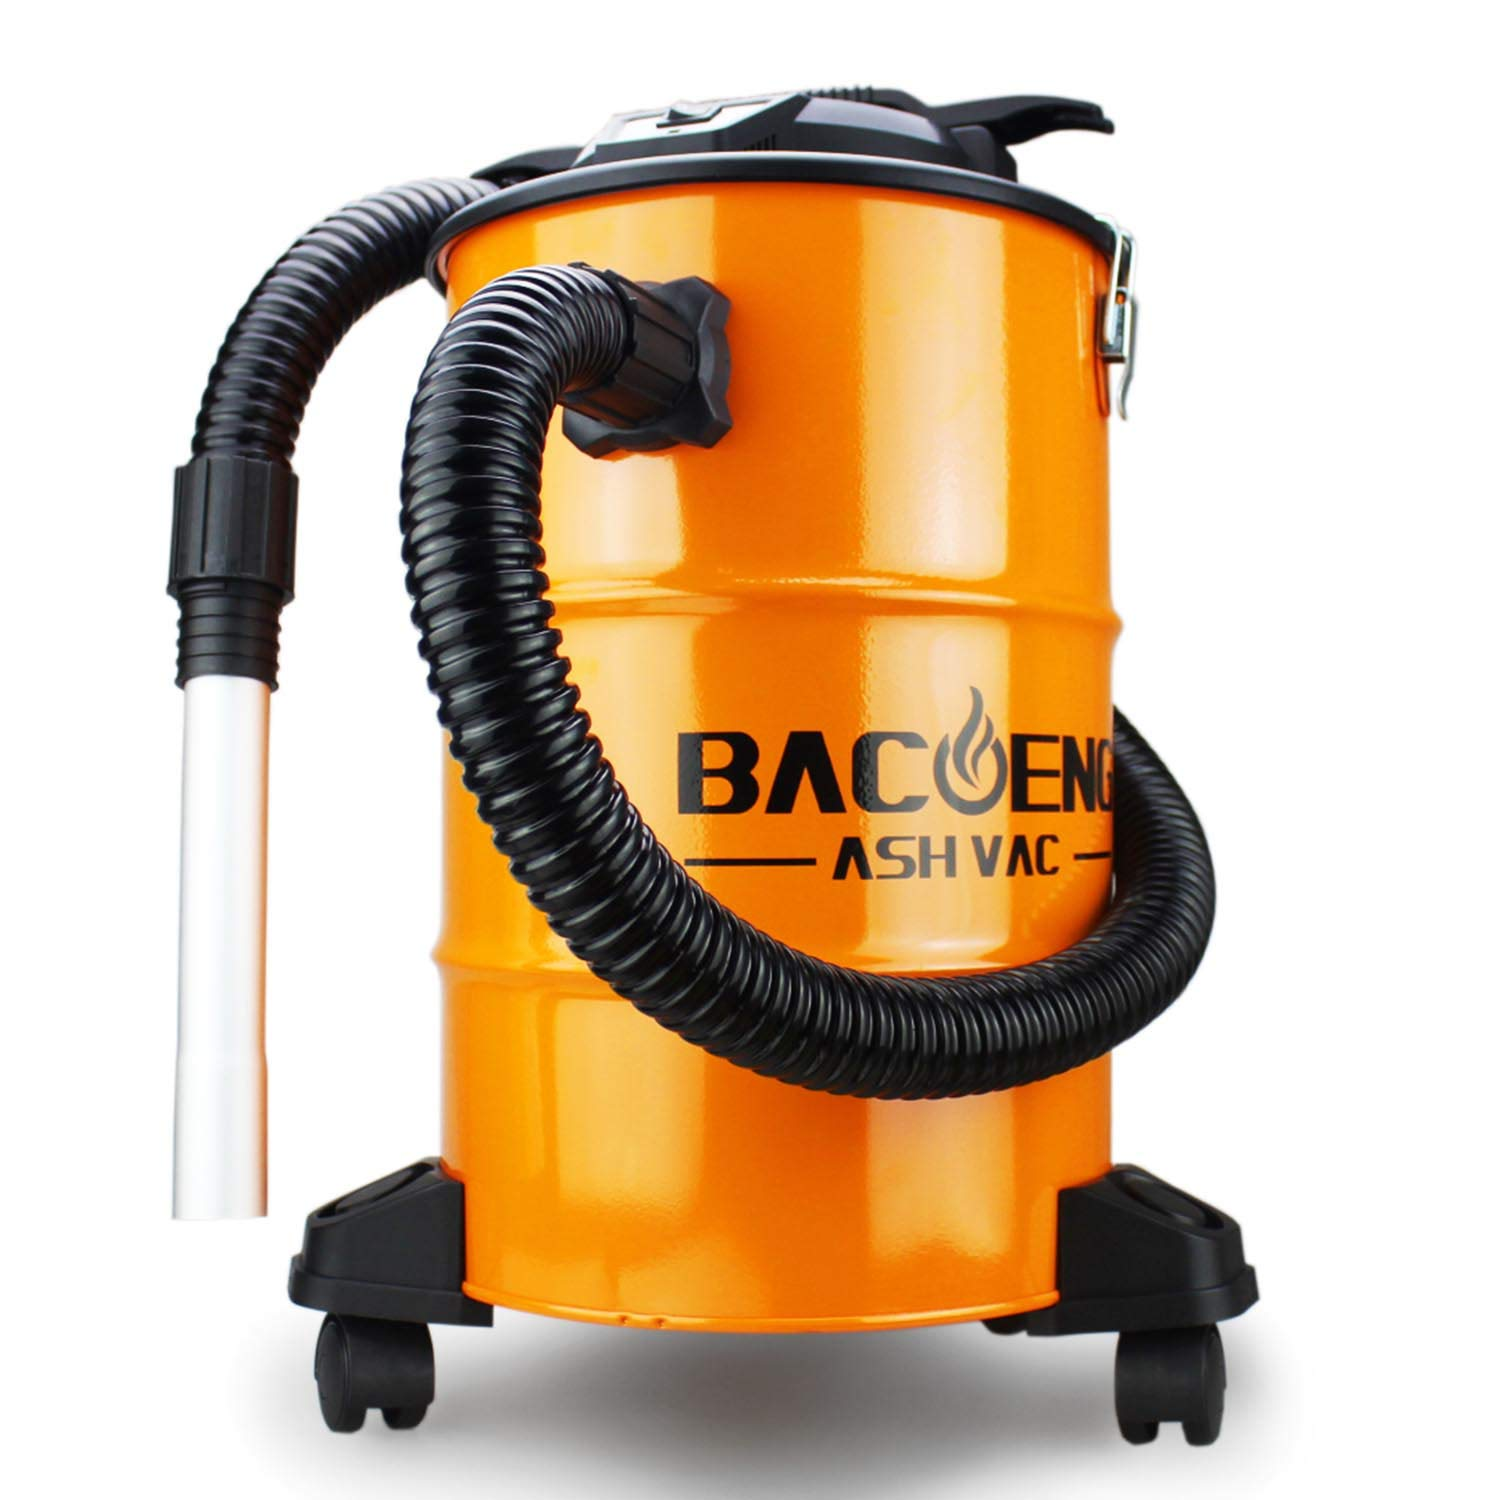 BACOENG Standard 5.3 Gallon 10Amp Ash Vacuum Cleaner with Double Filtration System for Pellet Stoves, Wood Stoves and BBQ Grills by BACOENG